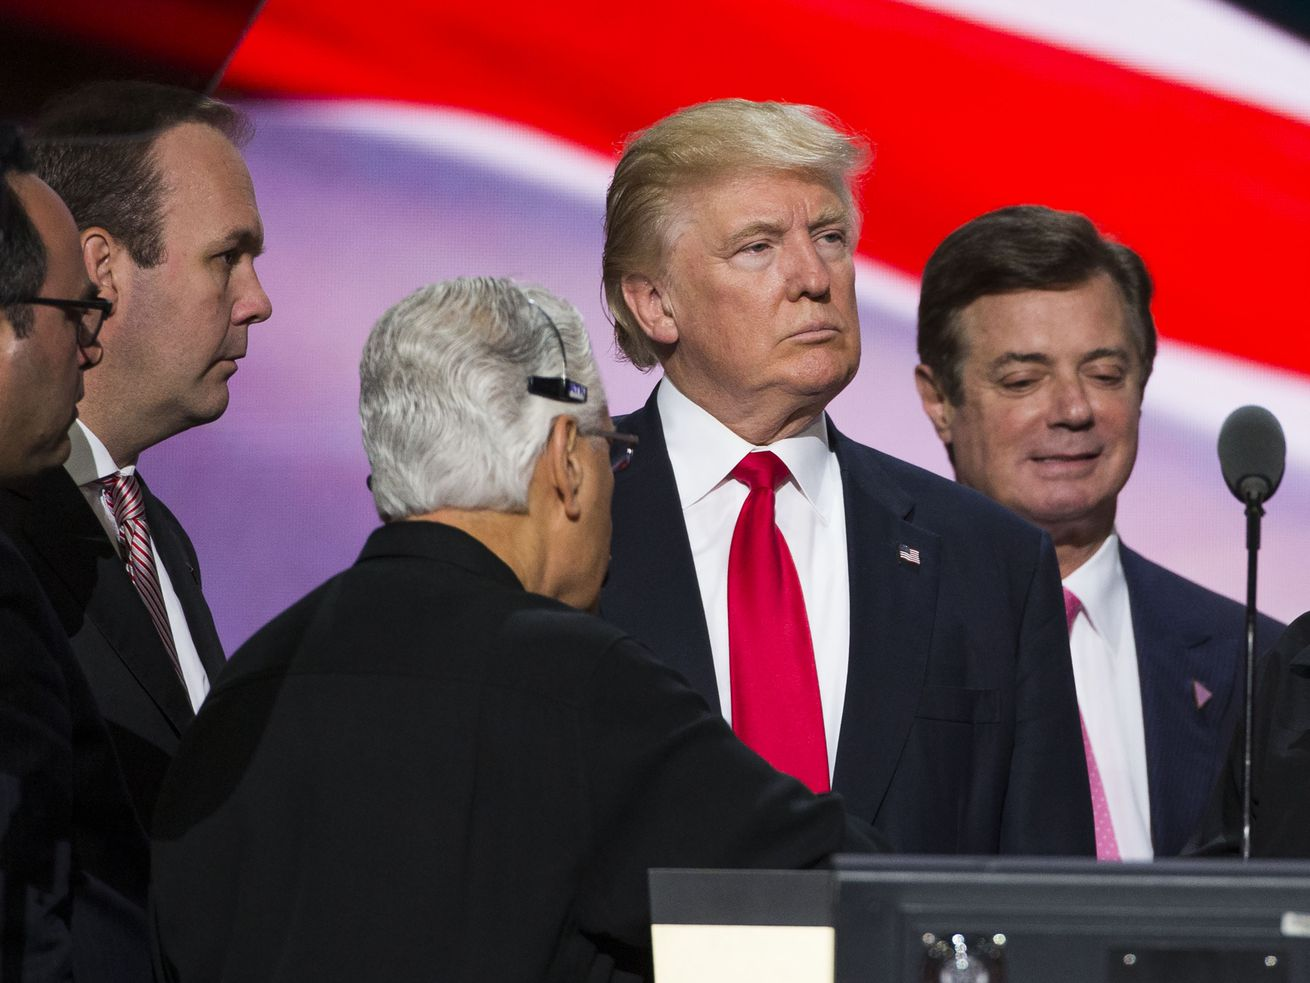 Trump and his then-campaign chair Paul Manafort (right) at the 2016 Republican convention.